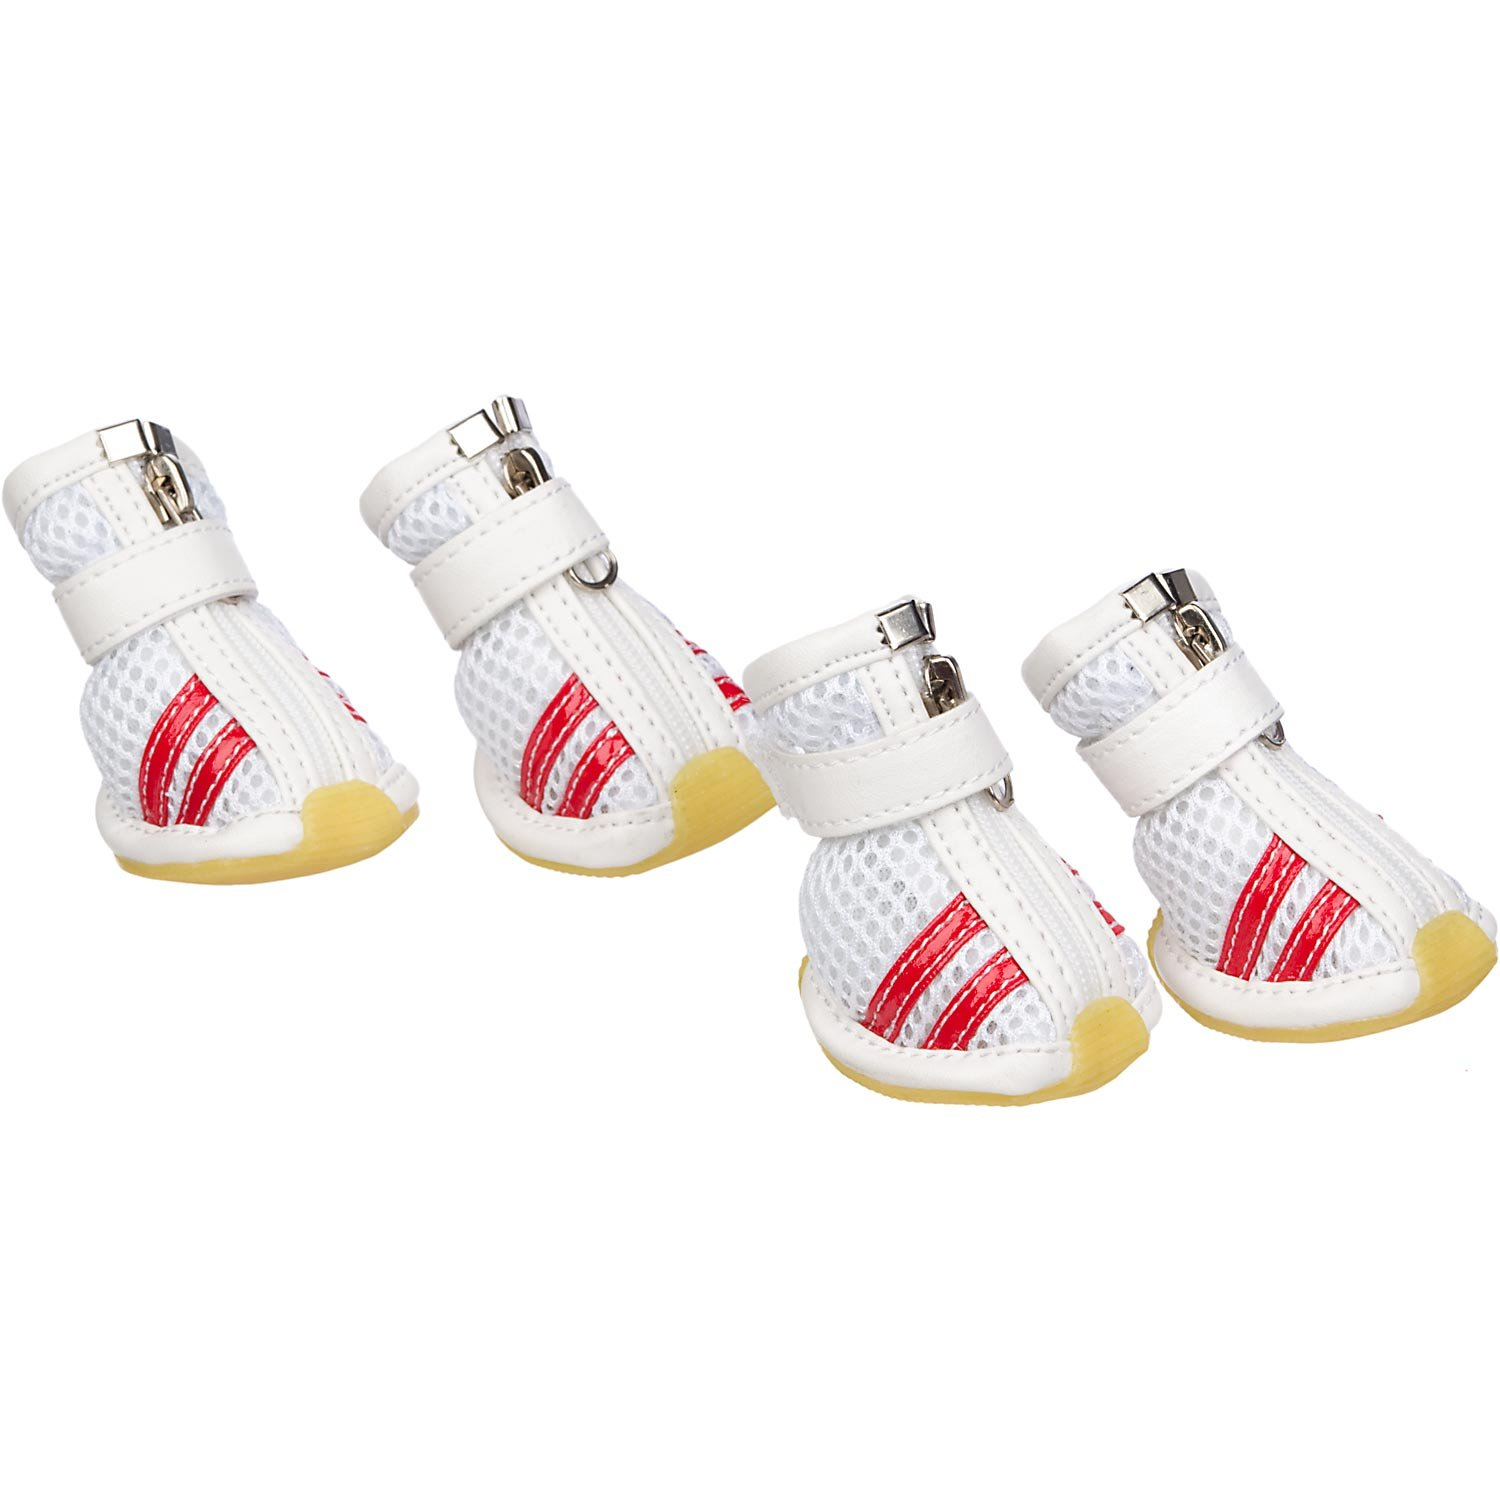 PET LIFE 'Air-Mesh' Flexible Lightweight Sporty Fashion Breathable Pet Dog shoes Sneakers Booties Boots w Rubberized Grips, Medium, White & Red